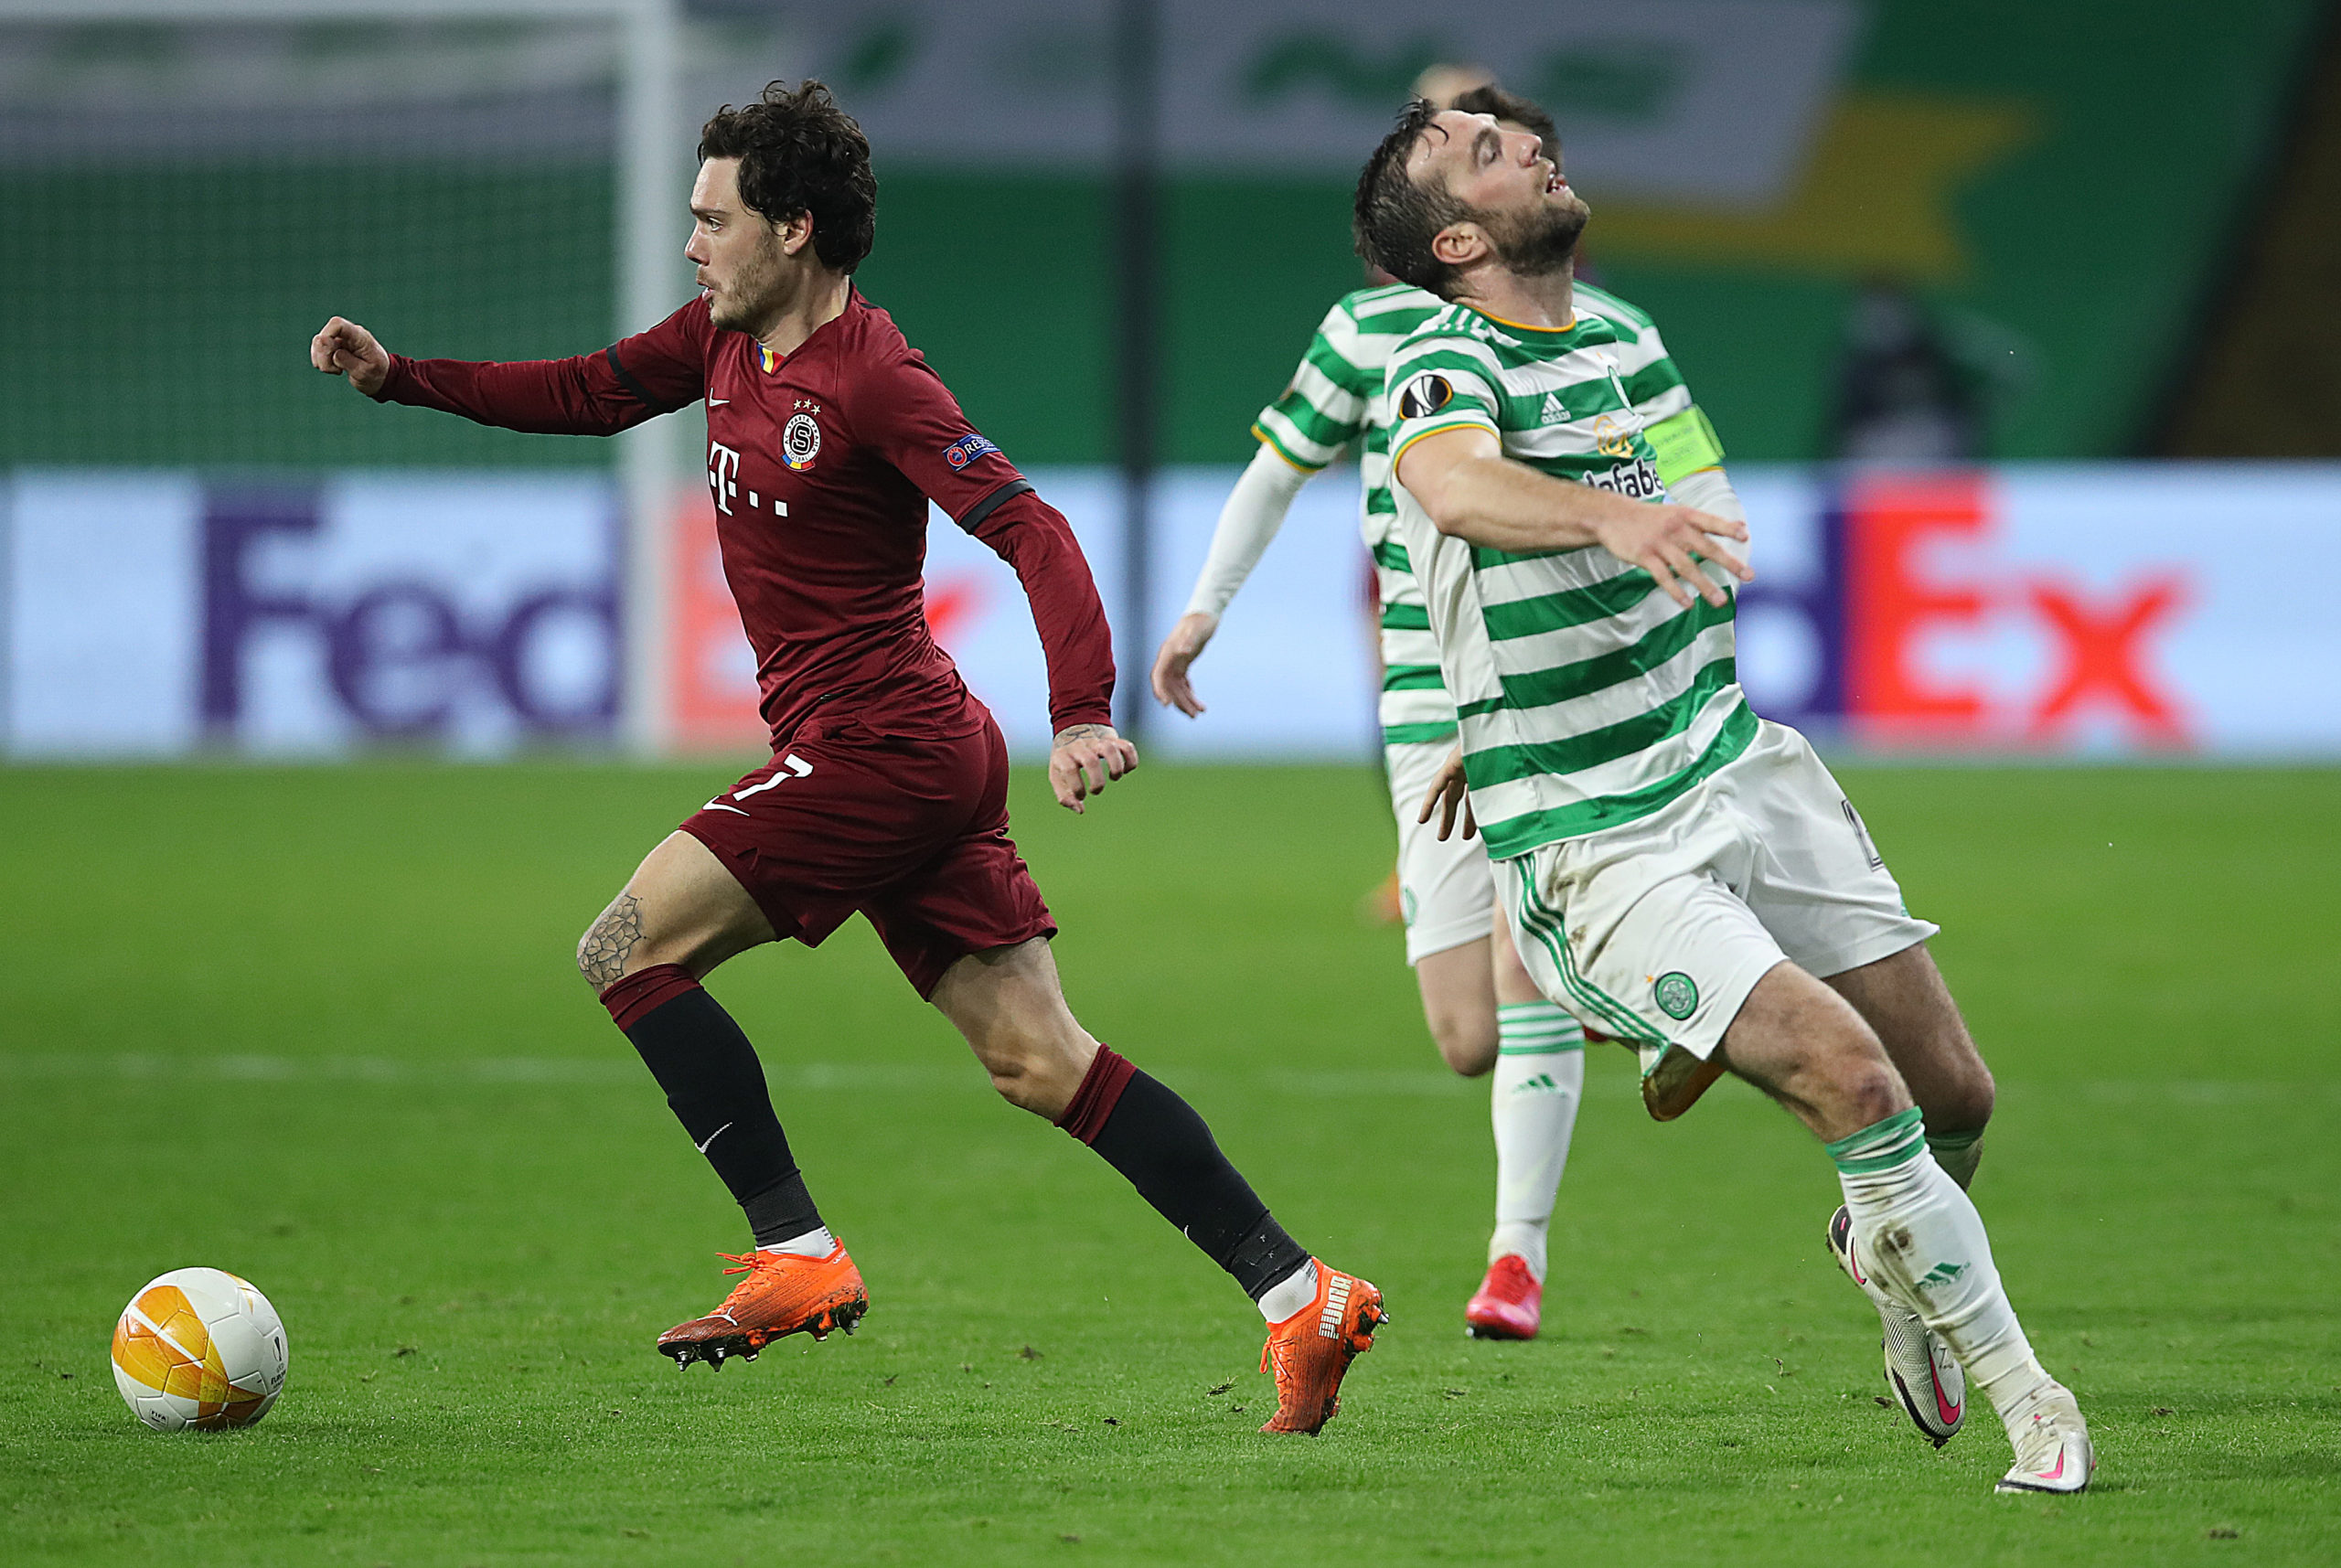 Celtic were chasing shadows on Thursday